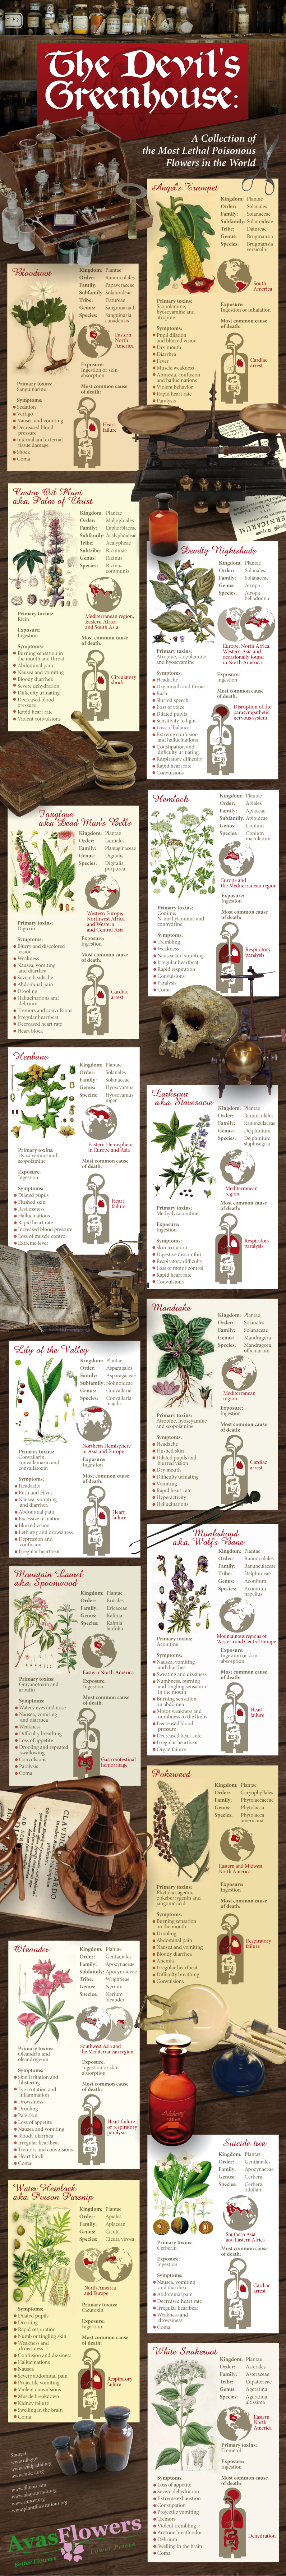 The Devil's Greenhouse - Avasflowers.net - Infographic